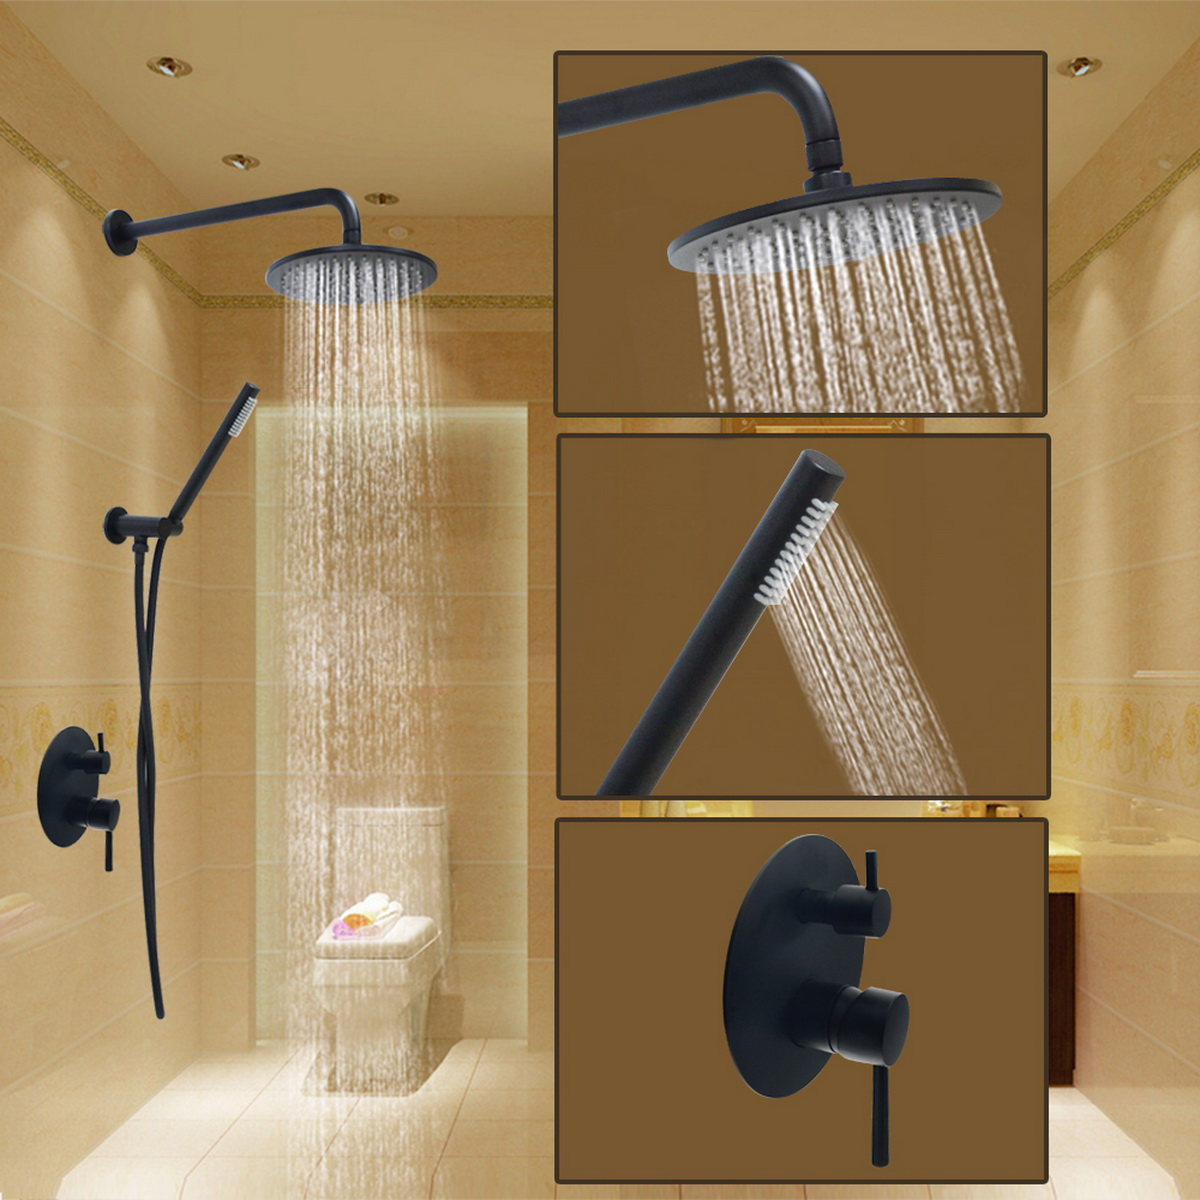 Oil-rubbed Bronze Shower System Set Bathroom Wall Mount Waterfall ...